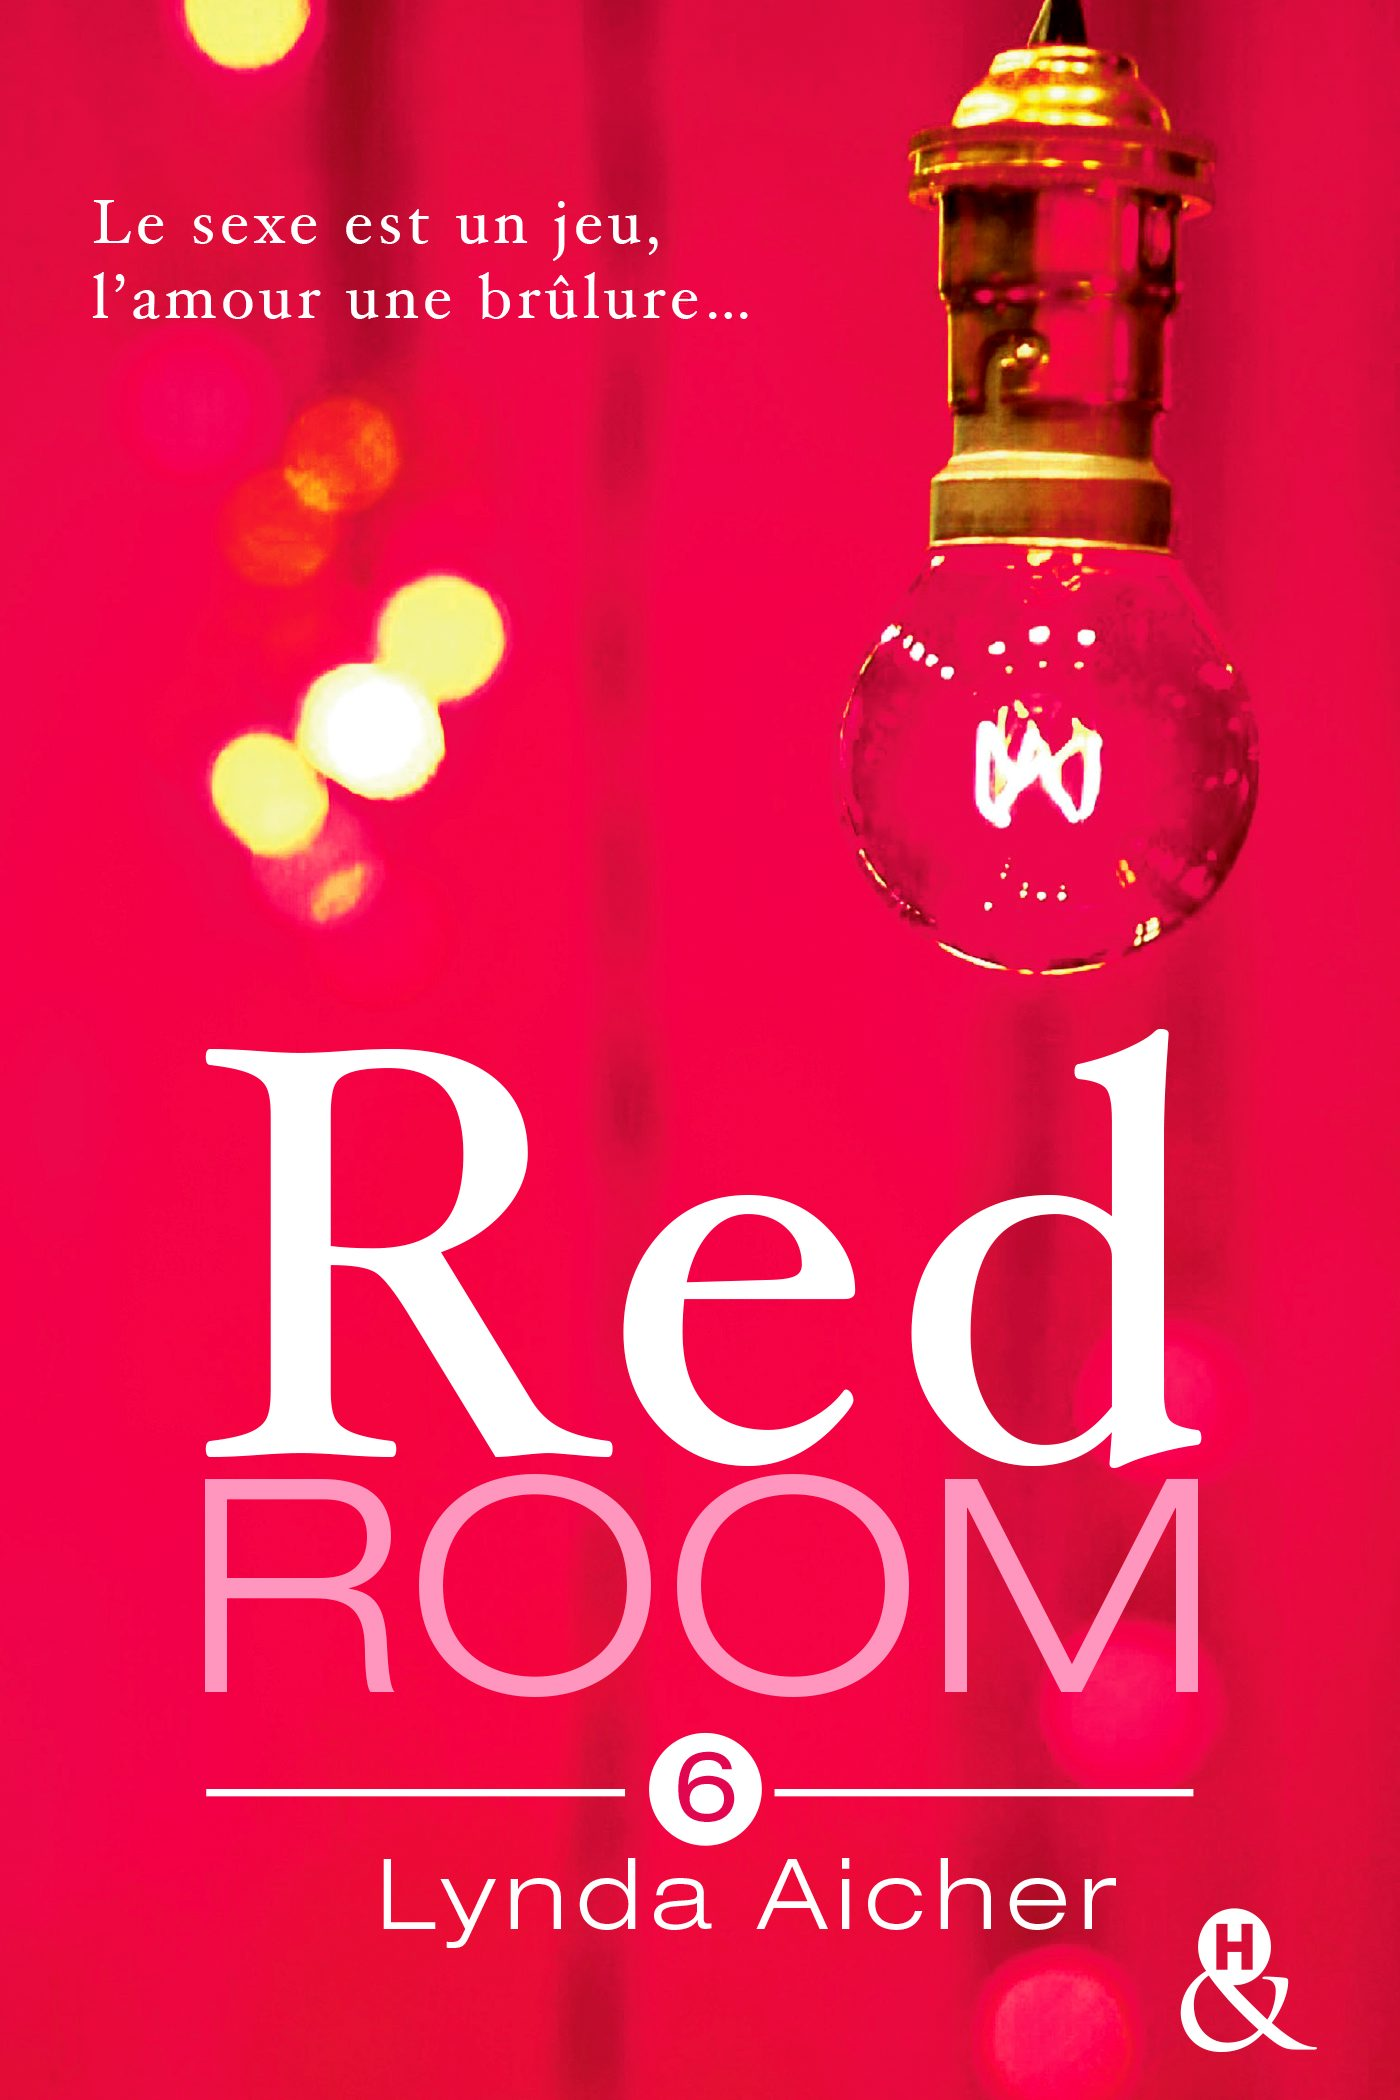 Red Room 6 : Tu chercheras ton plaisir